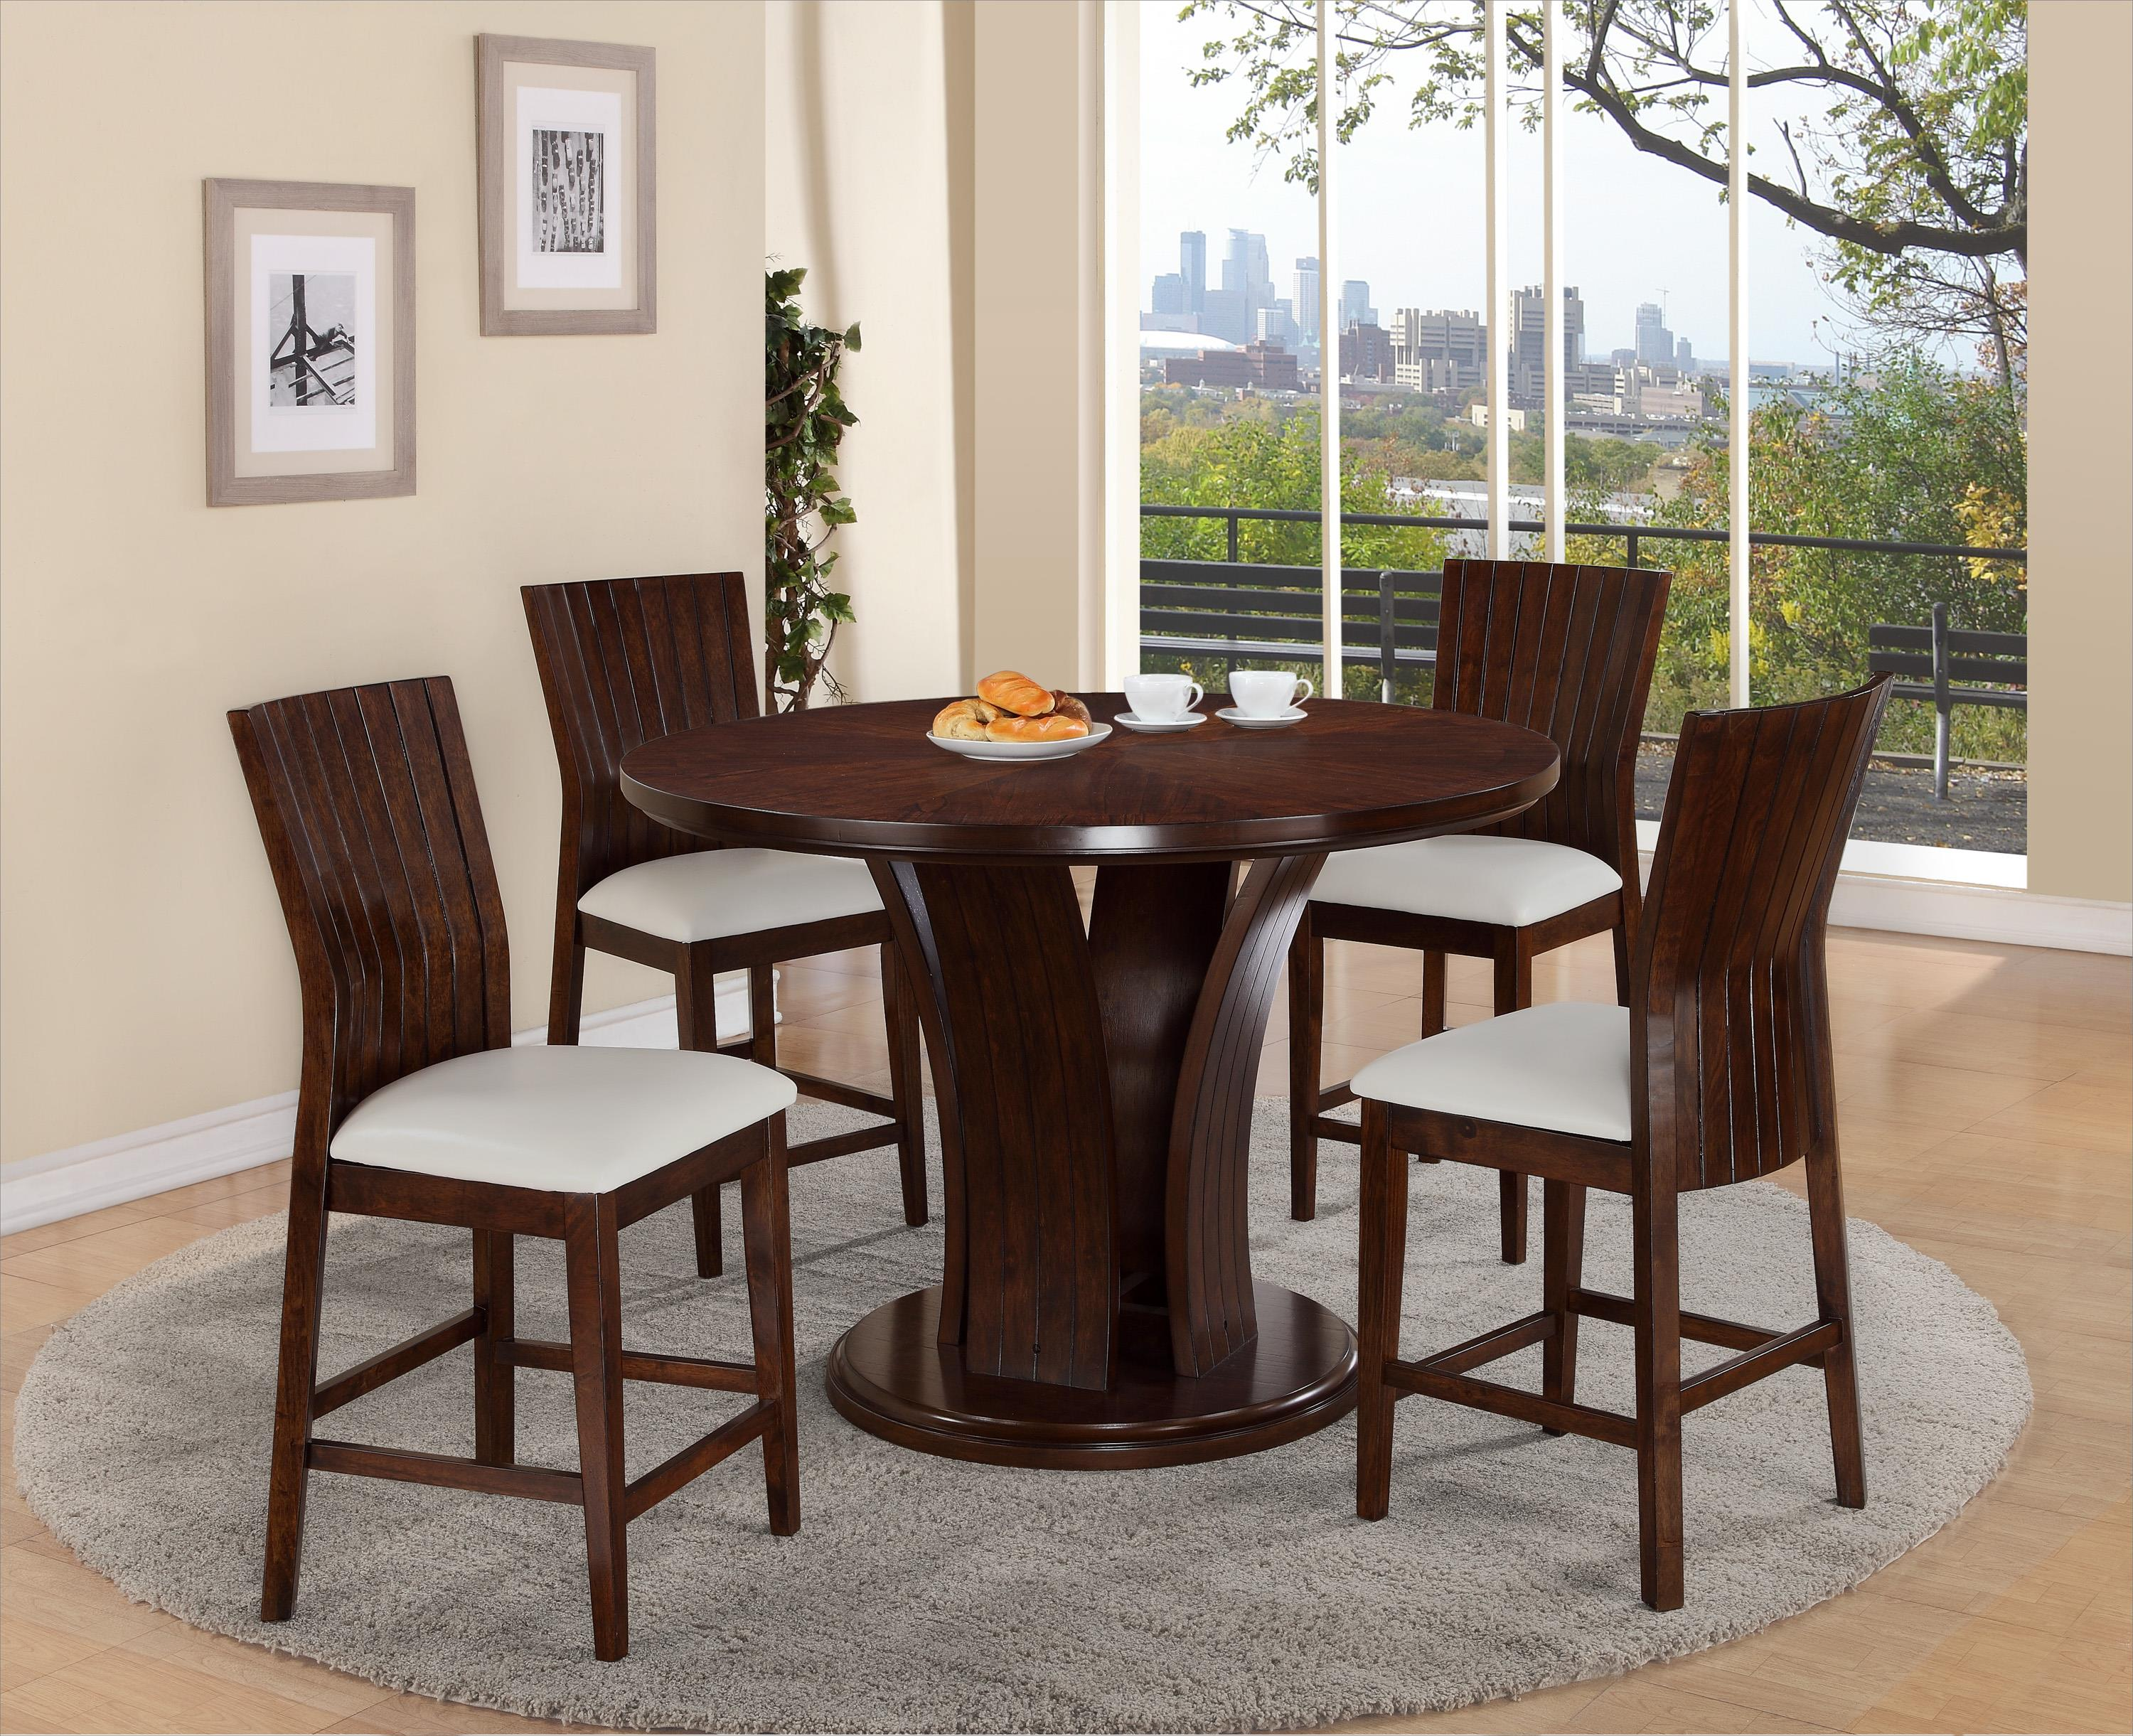 Crown Mark Daria Pub Height Dining Set - Item Number: 2734T-54-TOP+LEG+4x2734S-24-WH